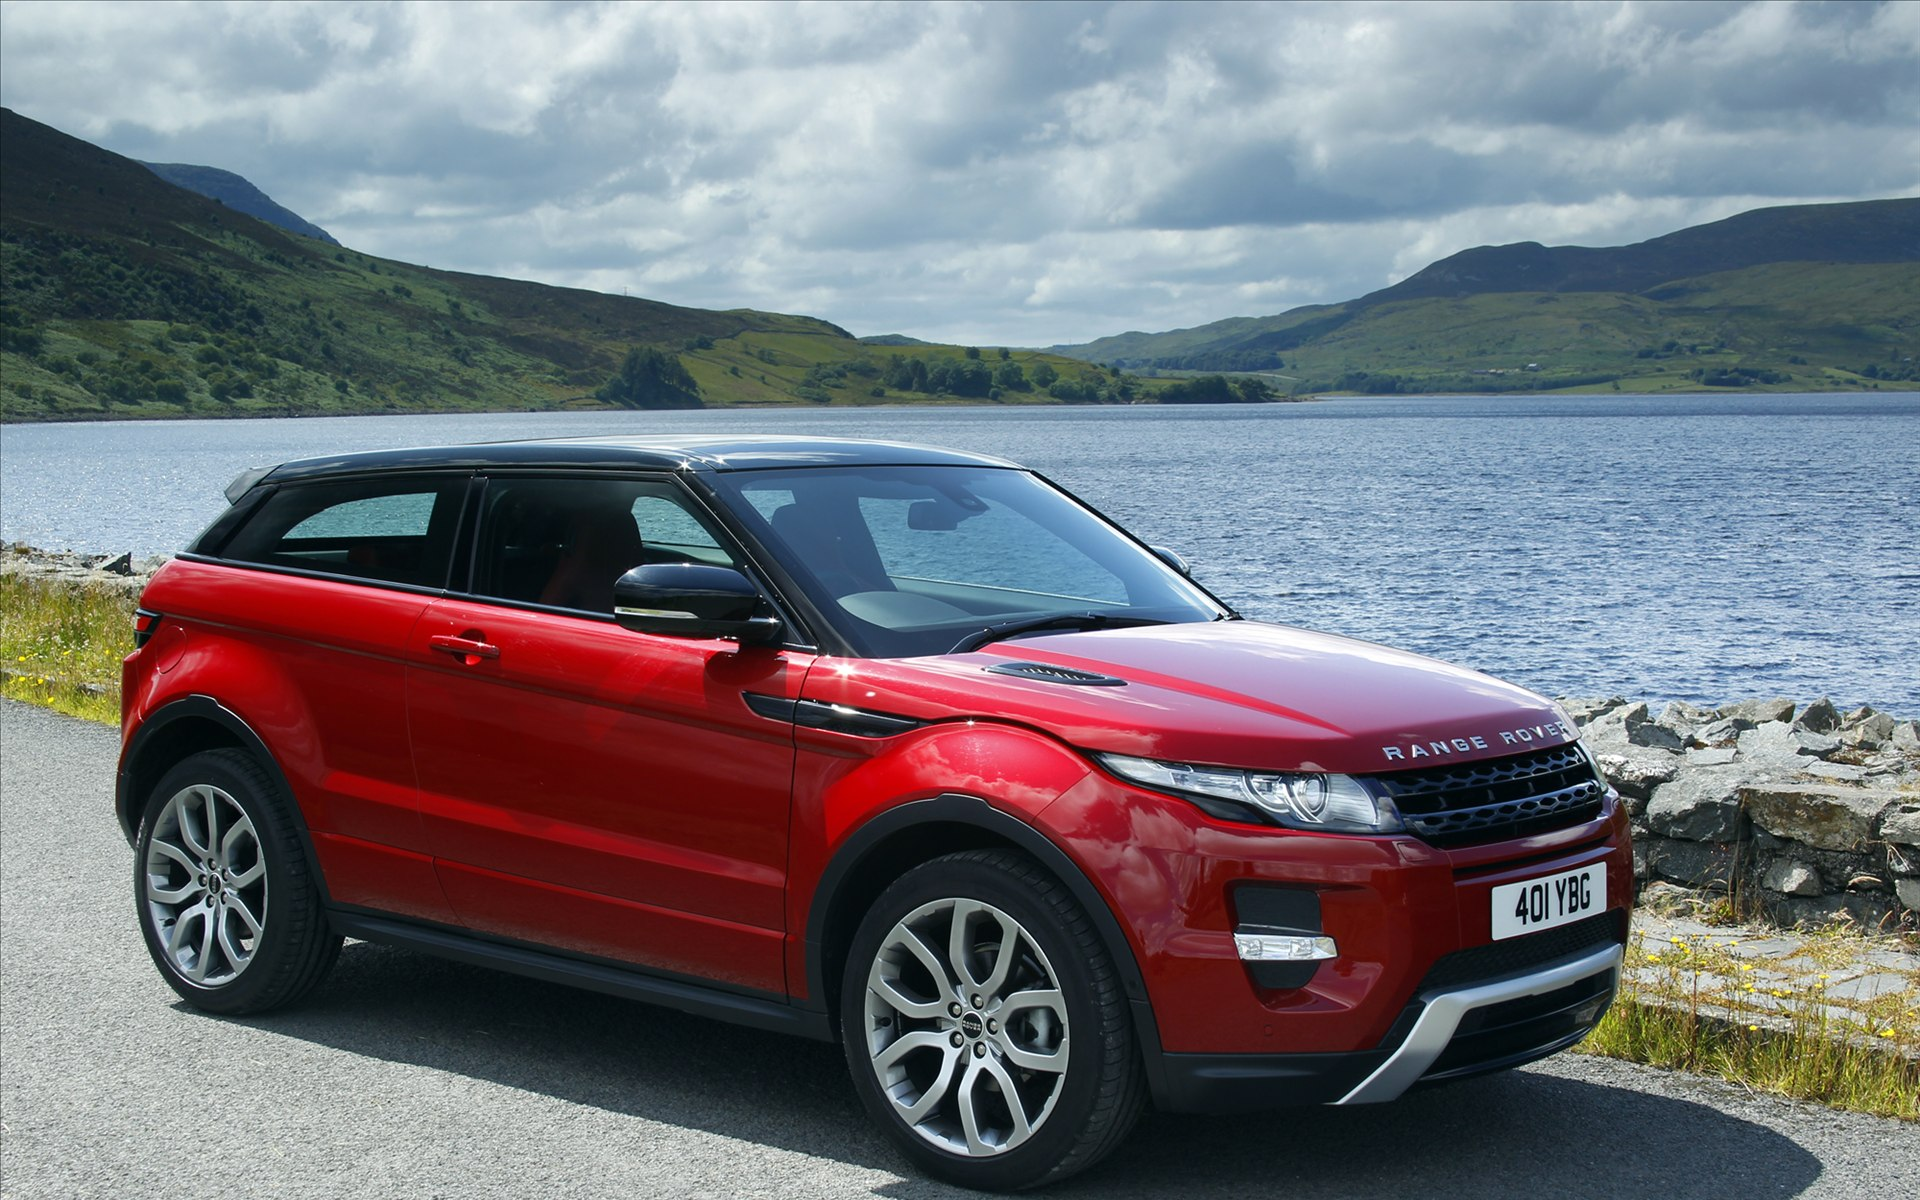 Red Land Rover Car by Seaside, Driving Speed Must be ...